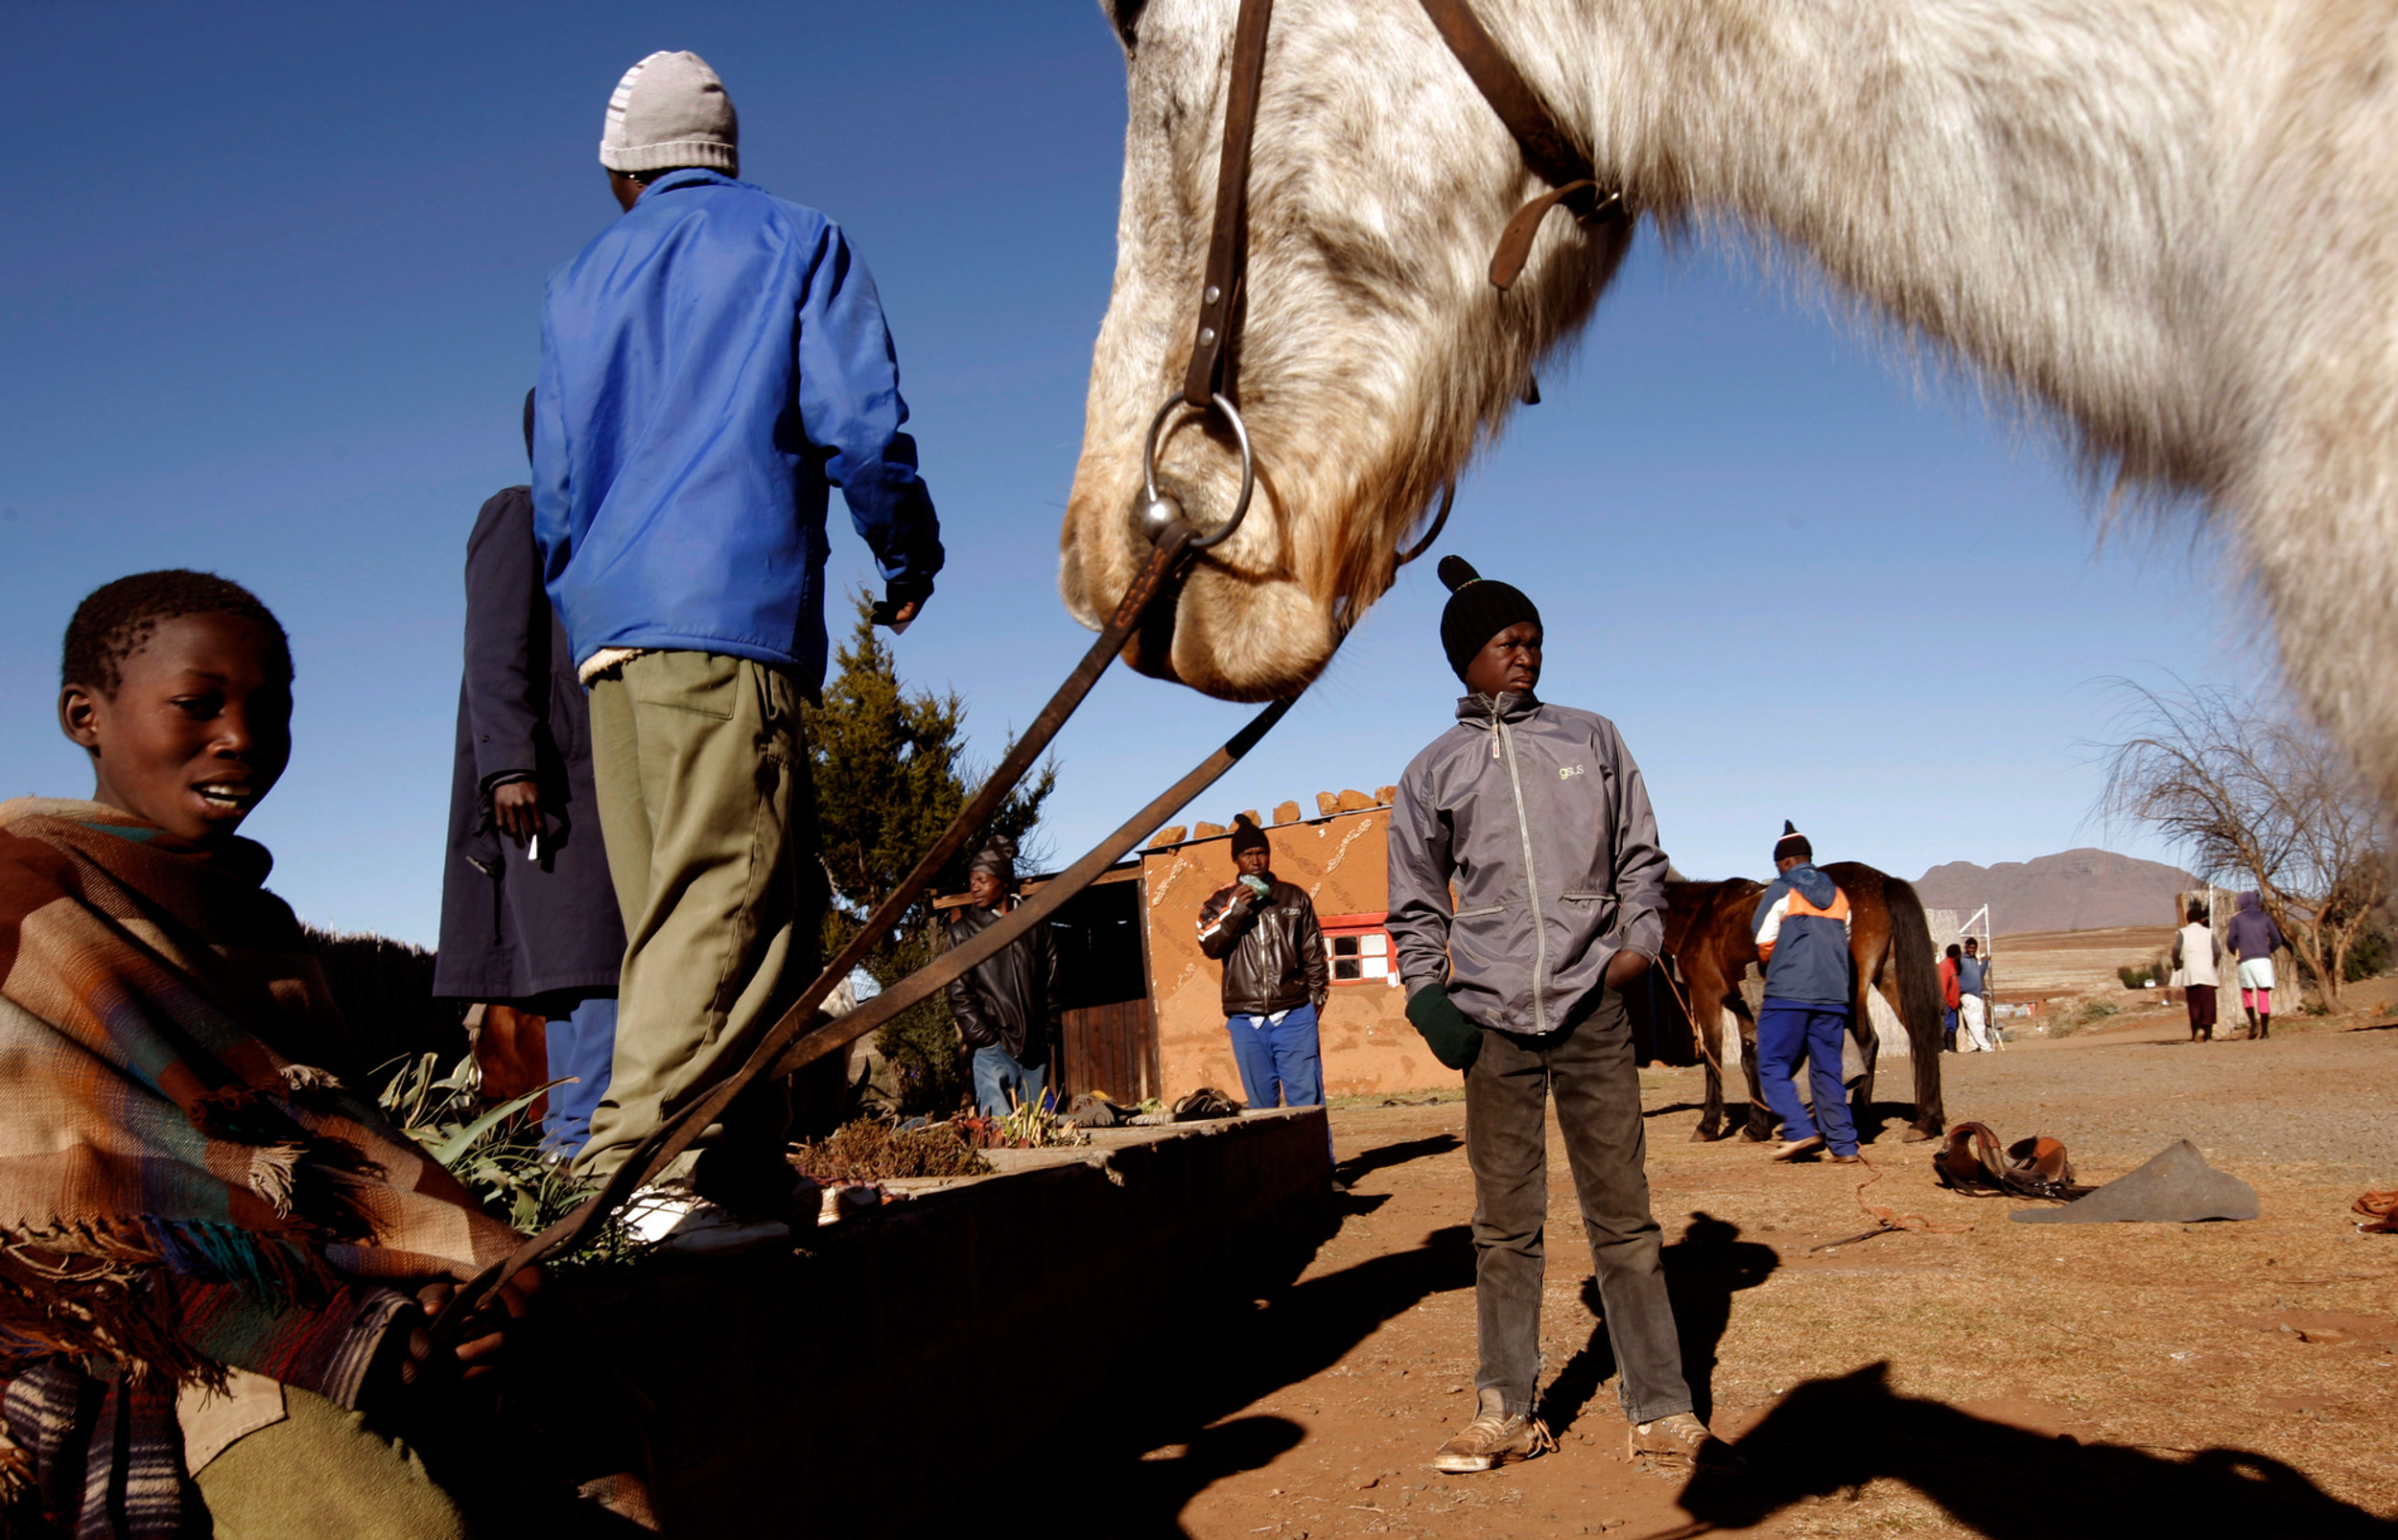 Horsemen and cattle herders tend to their horses at a trading store in Malealea, Lesotho on 11 July 2008. The Lesotho pony is an integral part of life for the Lesotho people as the ponies have been used for centuries to navigate the mountainous country.  The ponies are used by cattle herders to herd cattle and sheep as well as being used to transport goods.  They are also the wealth of a family or horseman and where brought to Southern Africa during the 18th century from the east by the Dutch settlers.